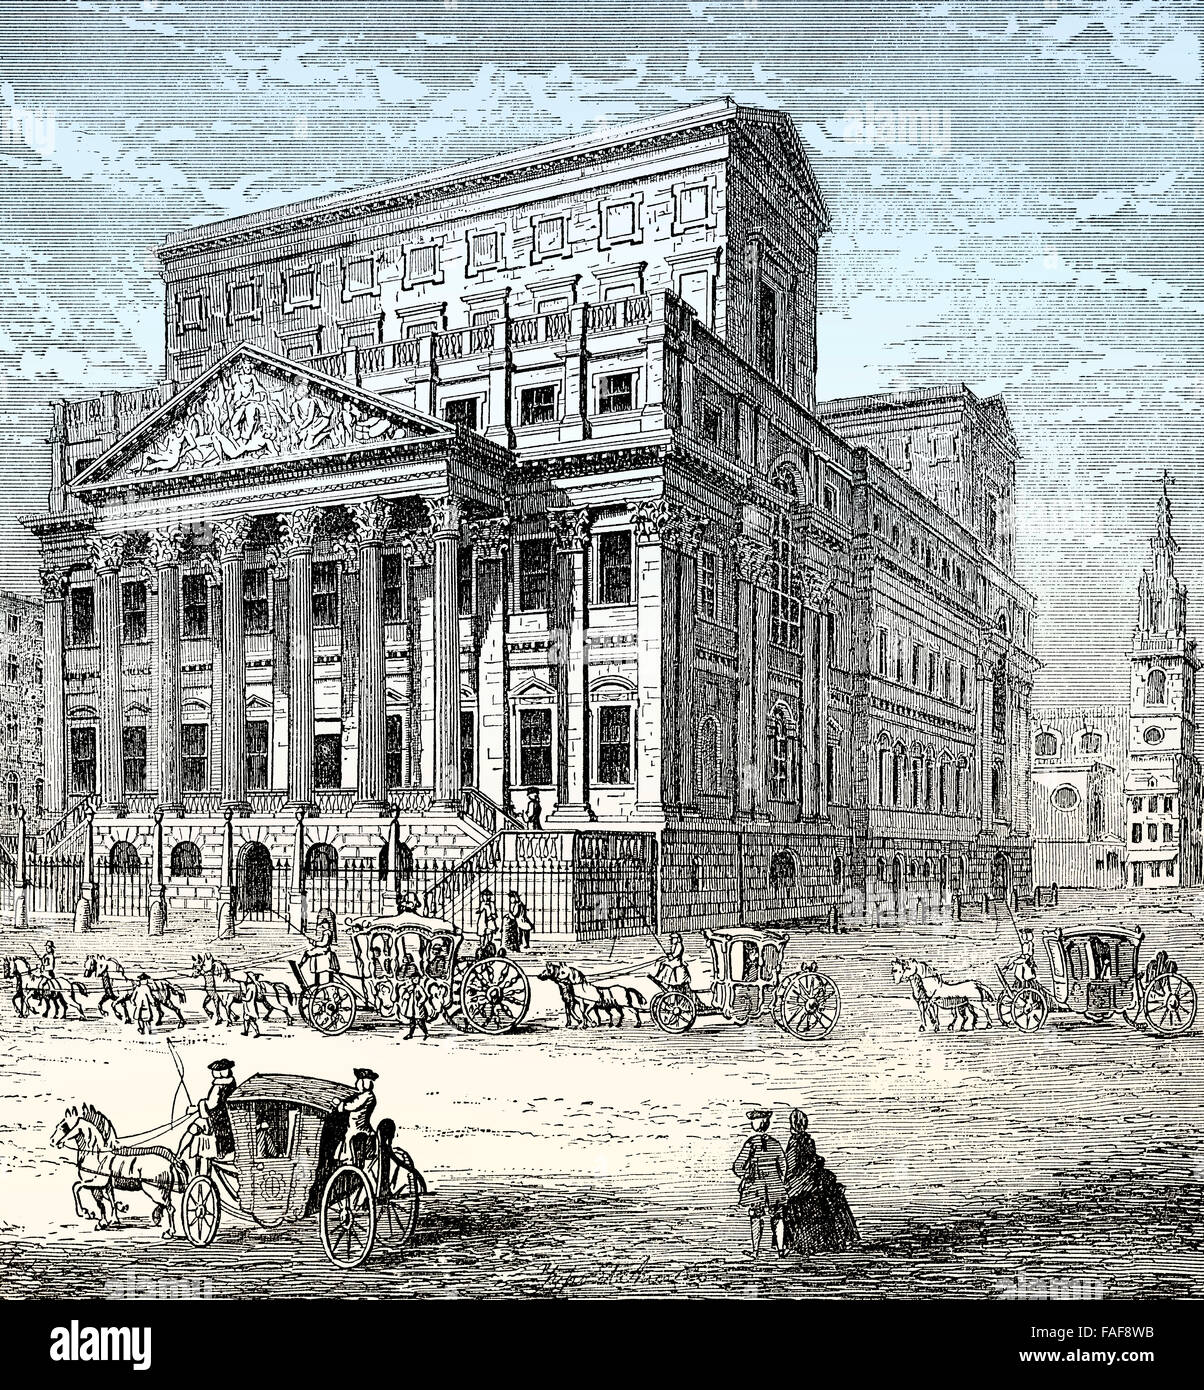 Mansion House, the official residence of the Lord Mayor of London, 18th century, - Stock Image